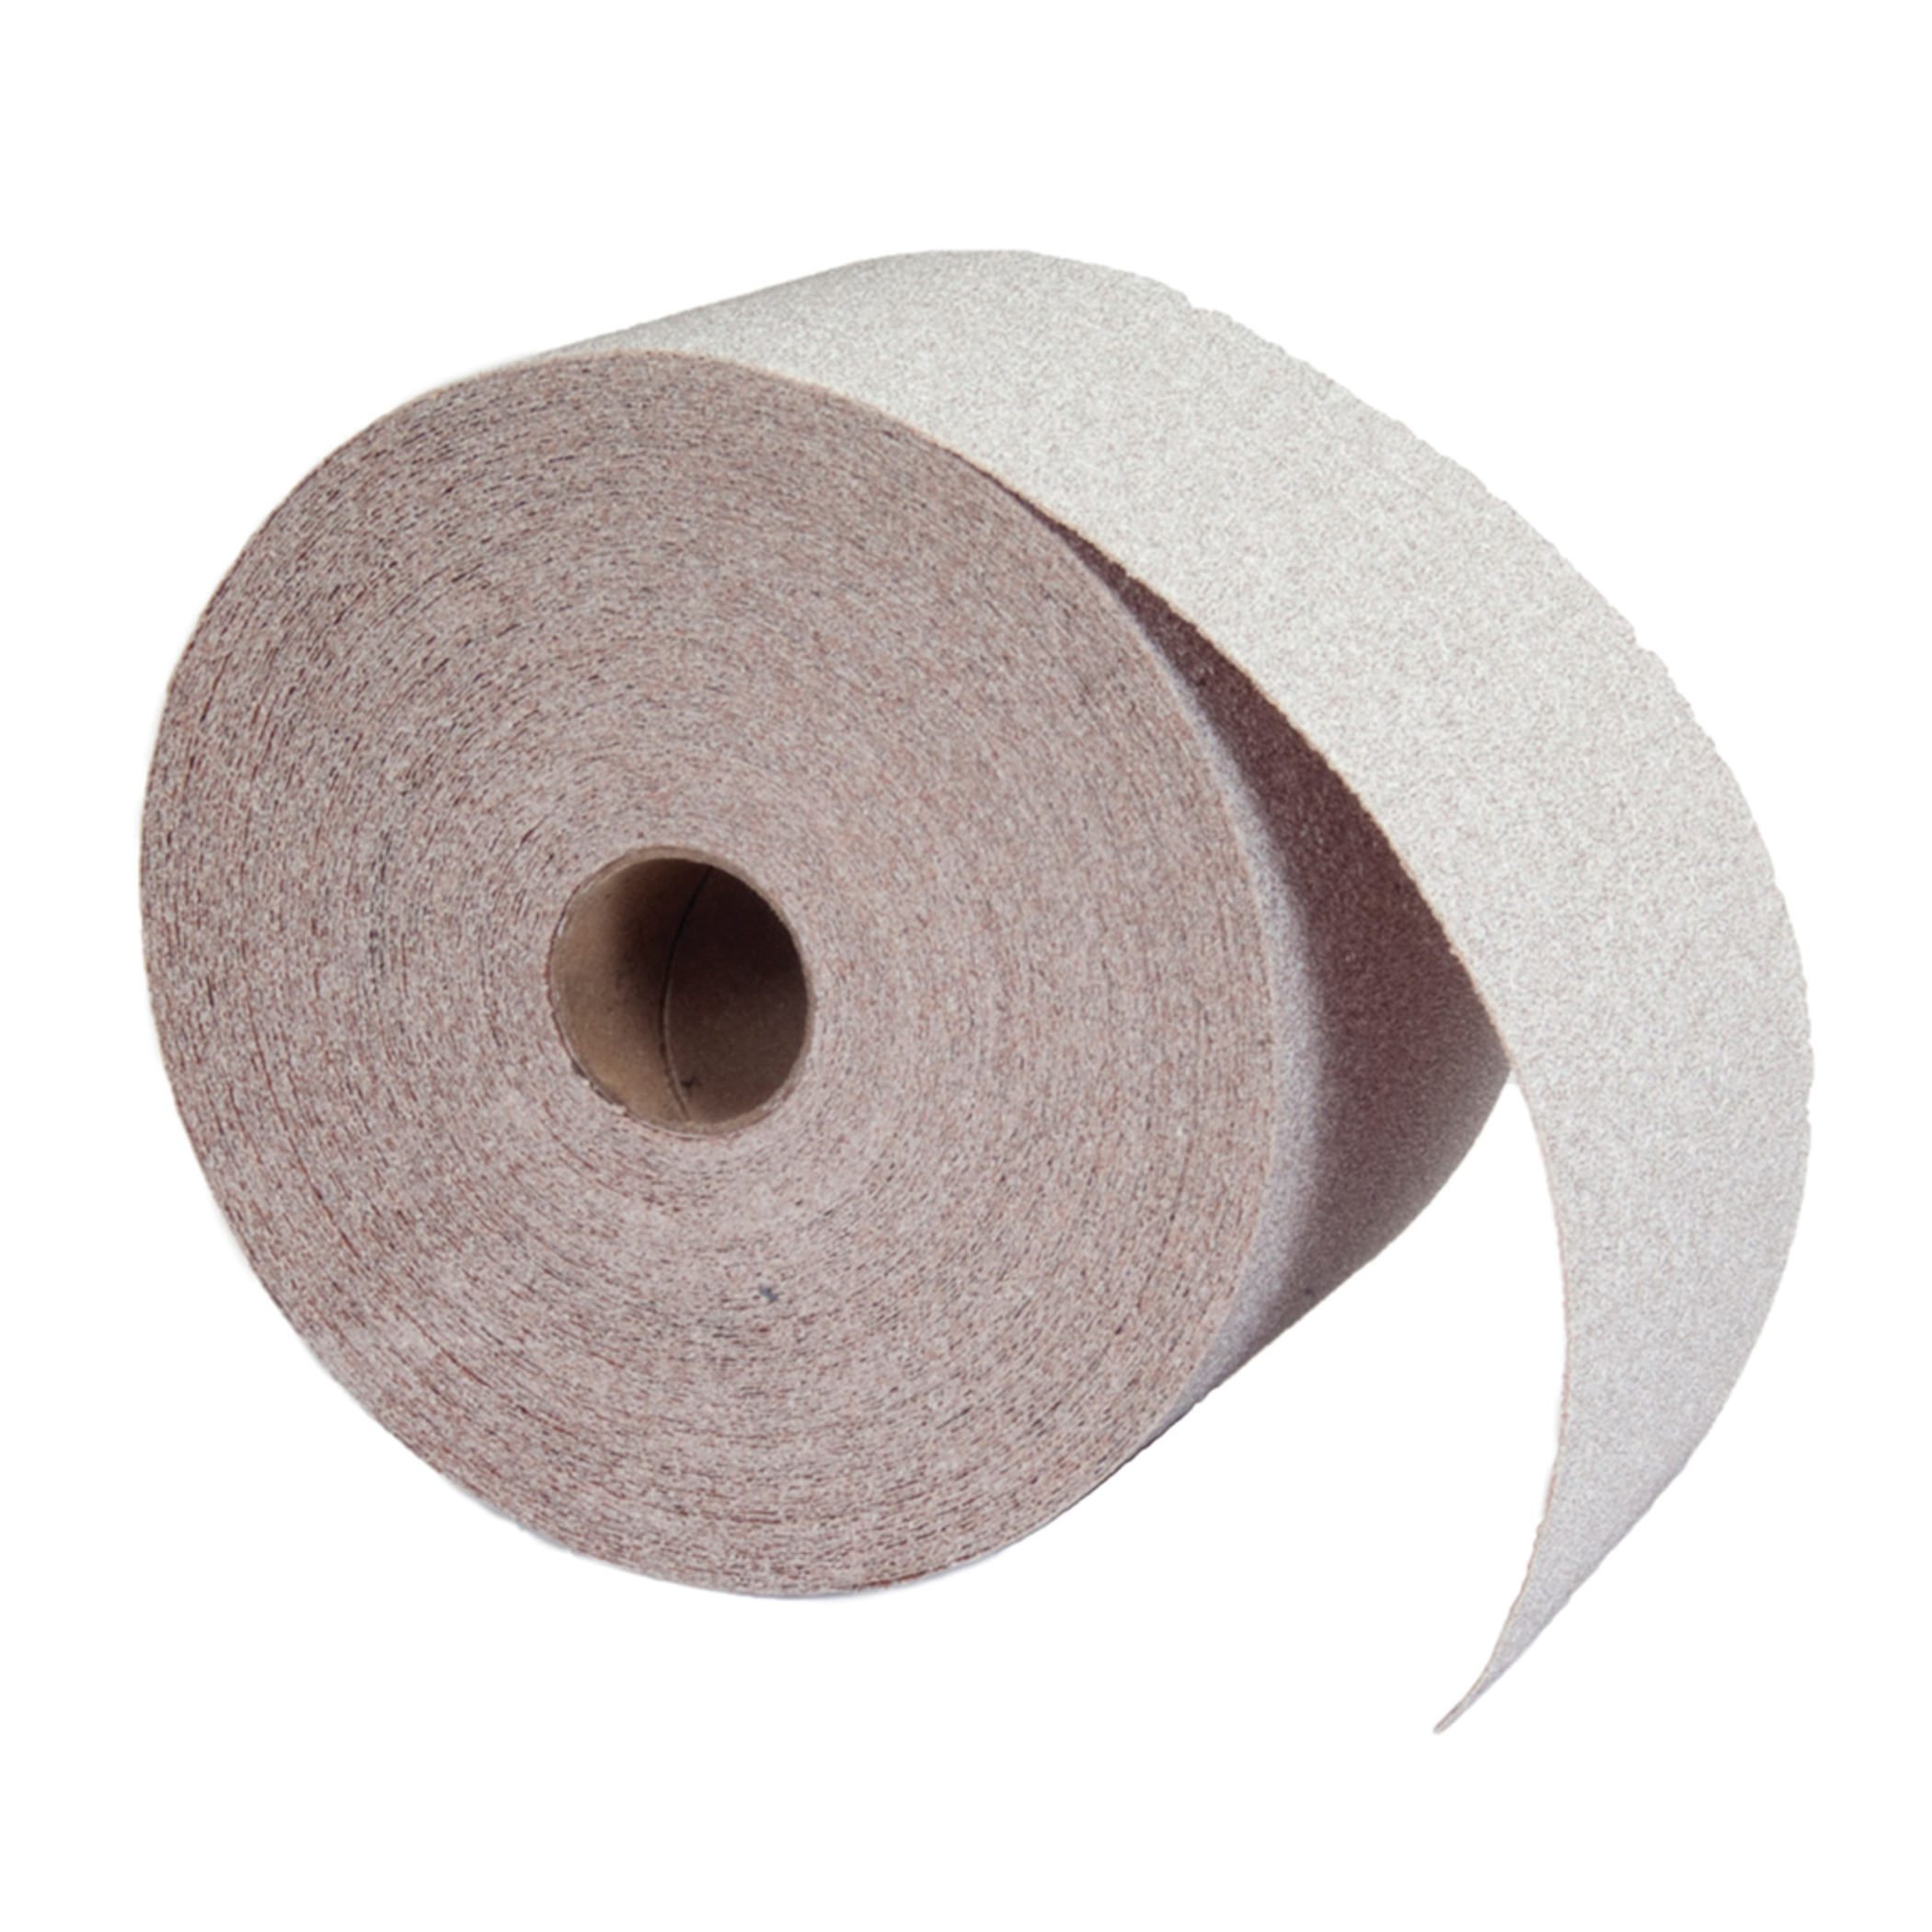 Norton® 66261131681 OP A275 Coated Abrasive Roll, 45 yd L x 2-3/4 in W, 400 Grit, Super Fine Grade, Aluminum Oxide Abrasive, Anti-Loading Paper Backing